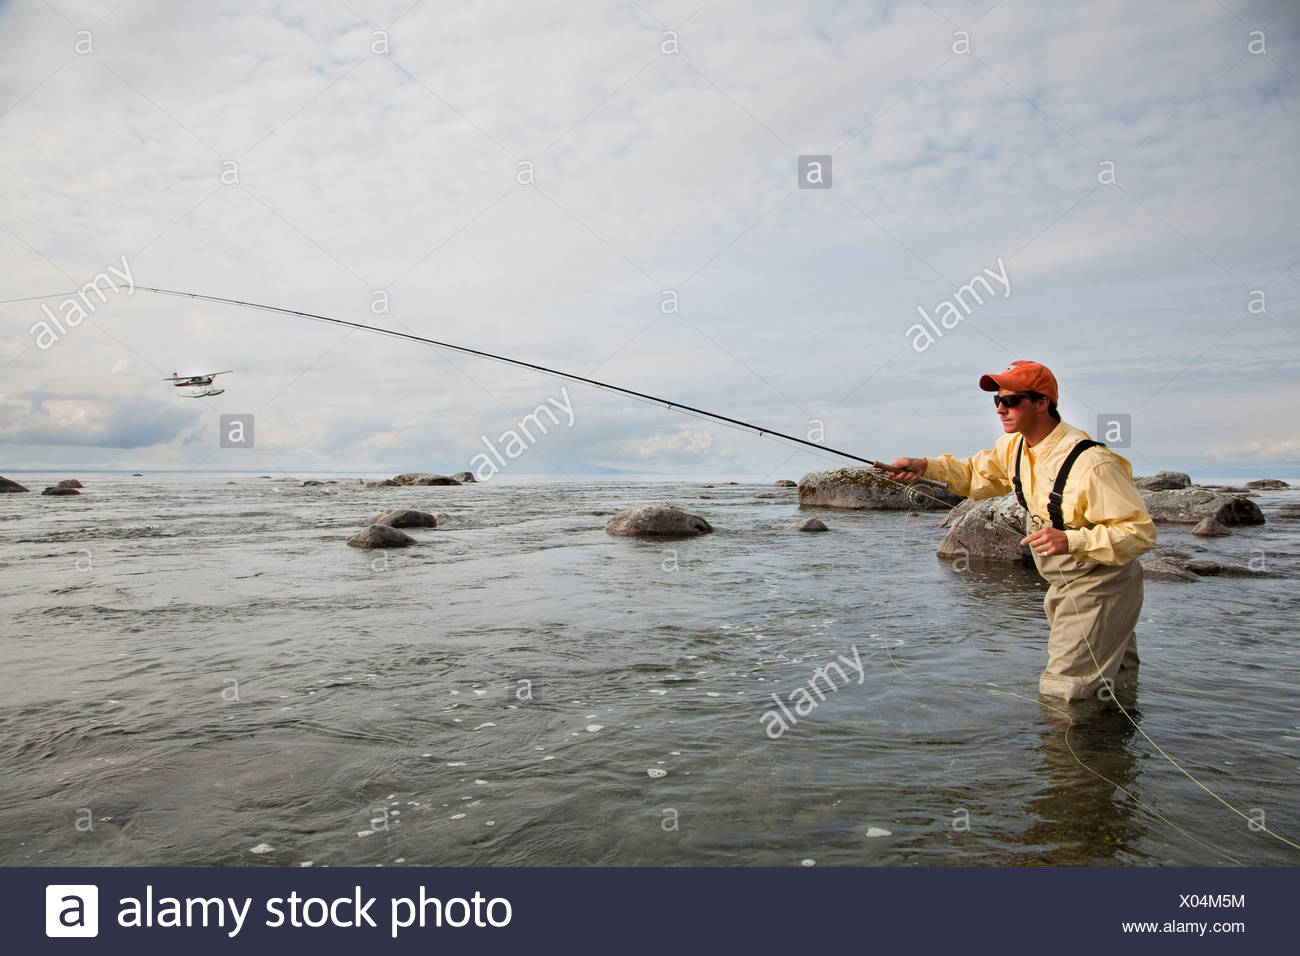 Angler stock photos angler stock images alamy for Fly fishing bay area